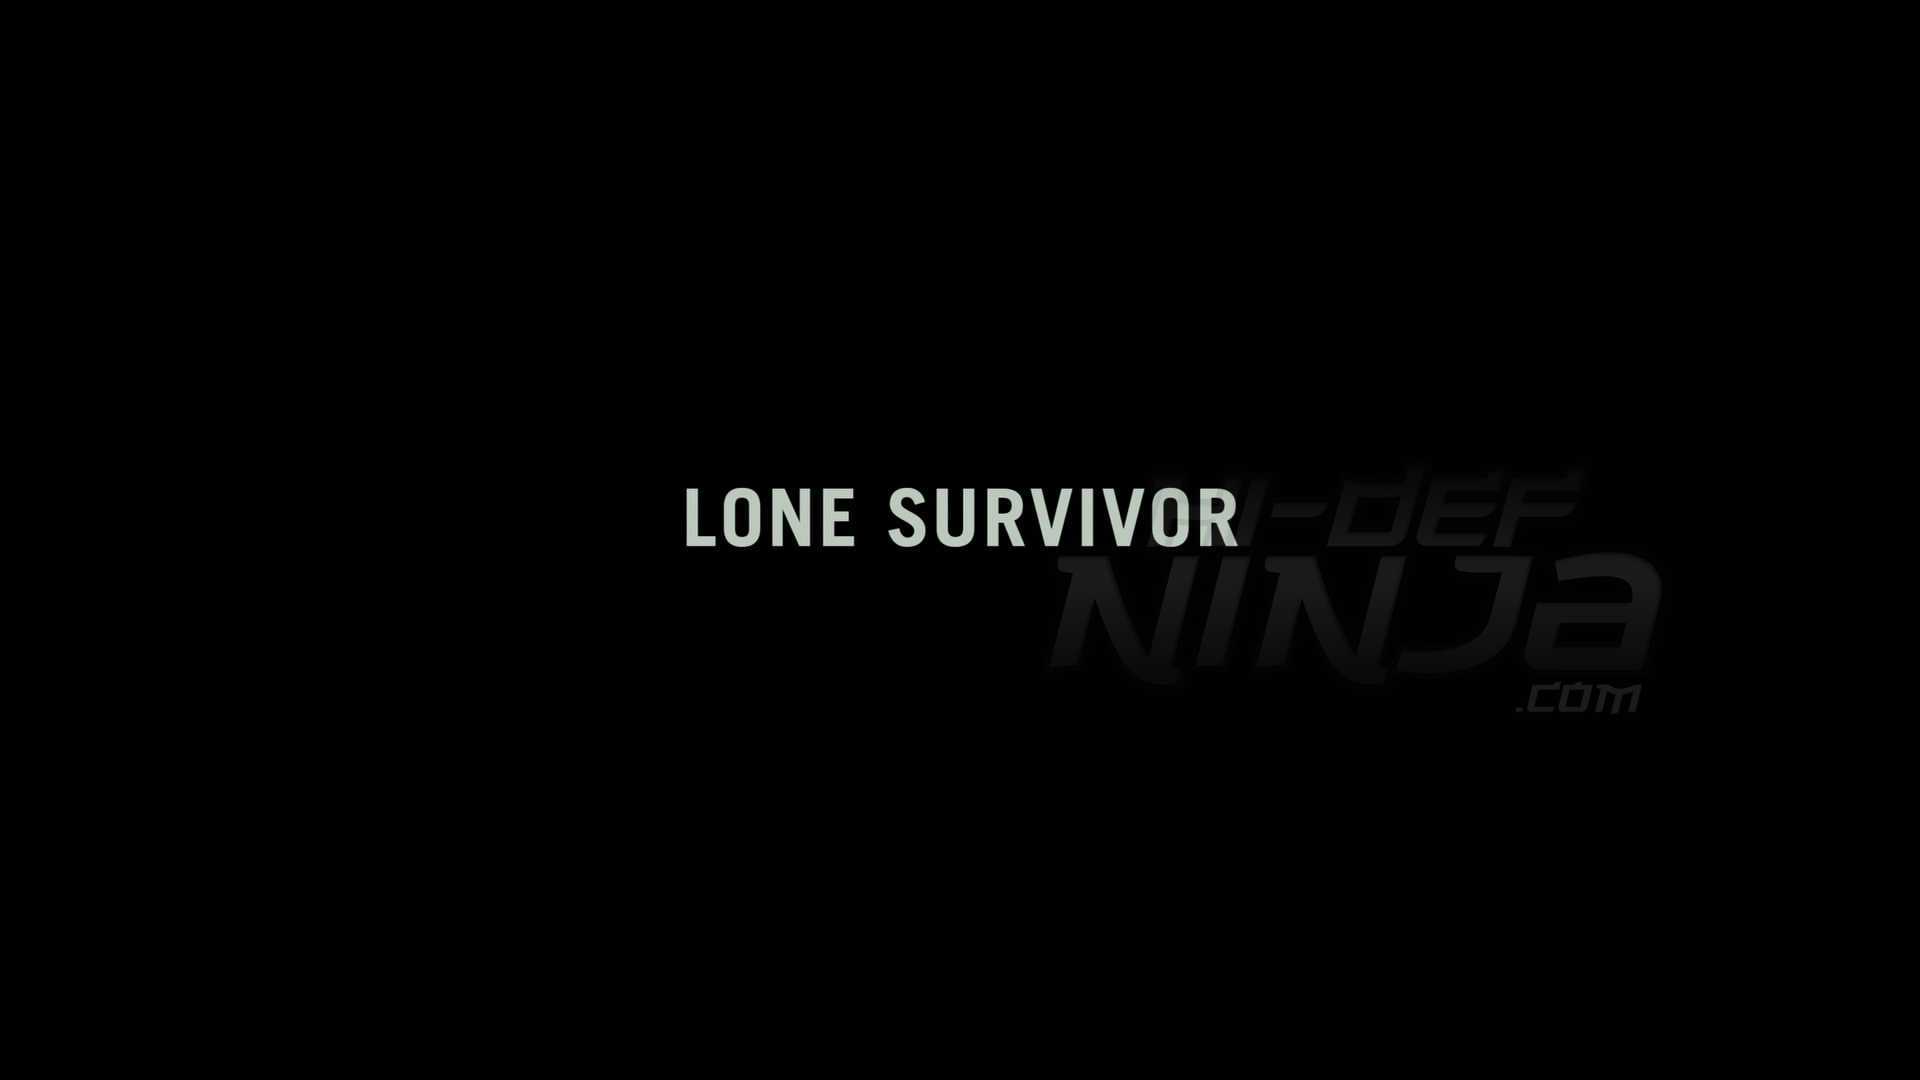 LoneSurvivor-1